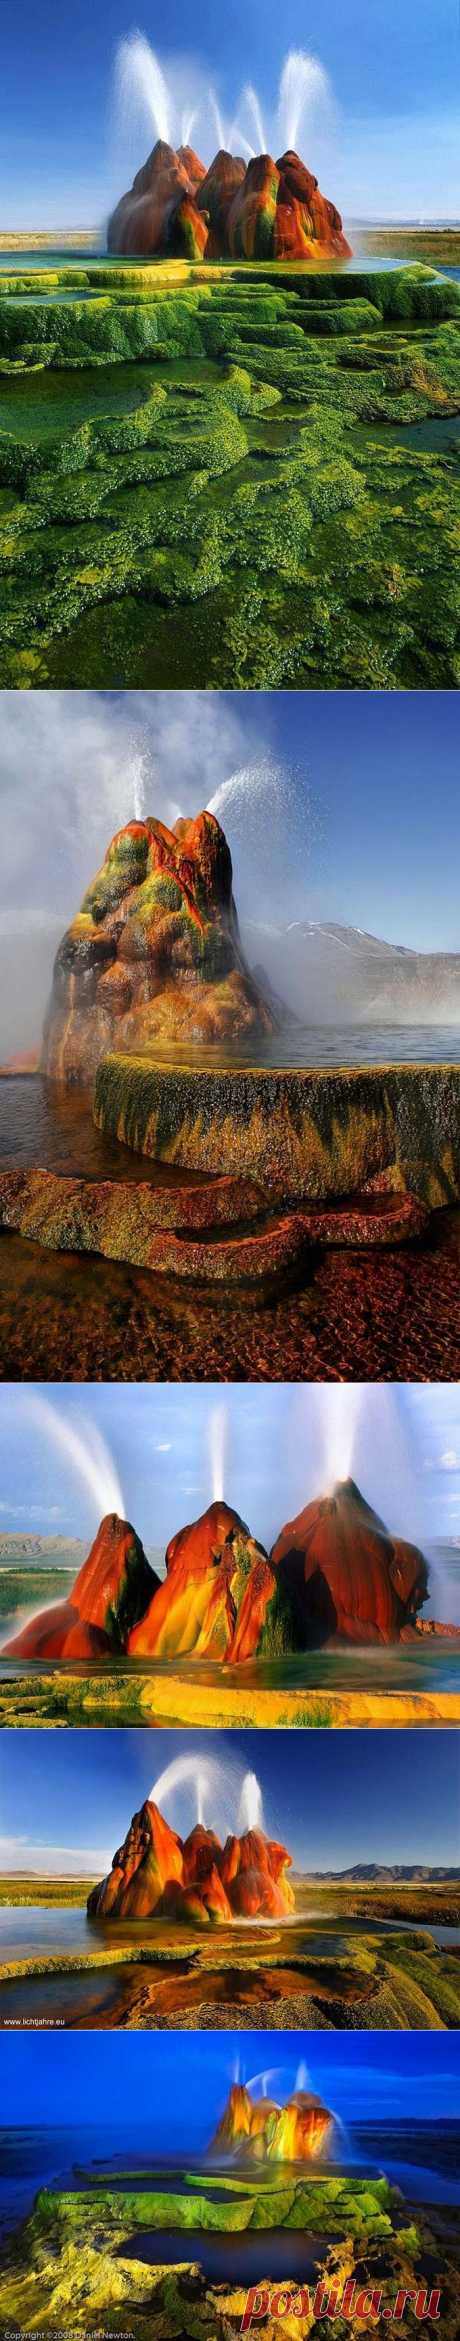 Geyser Fly - a nature miracle   In the world interesting